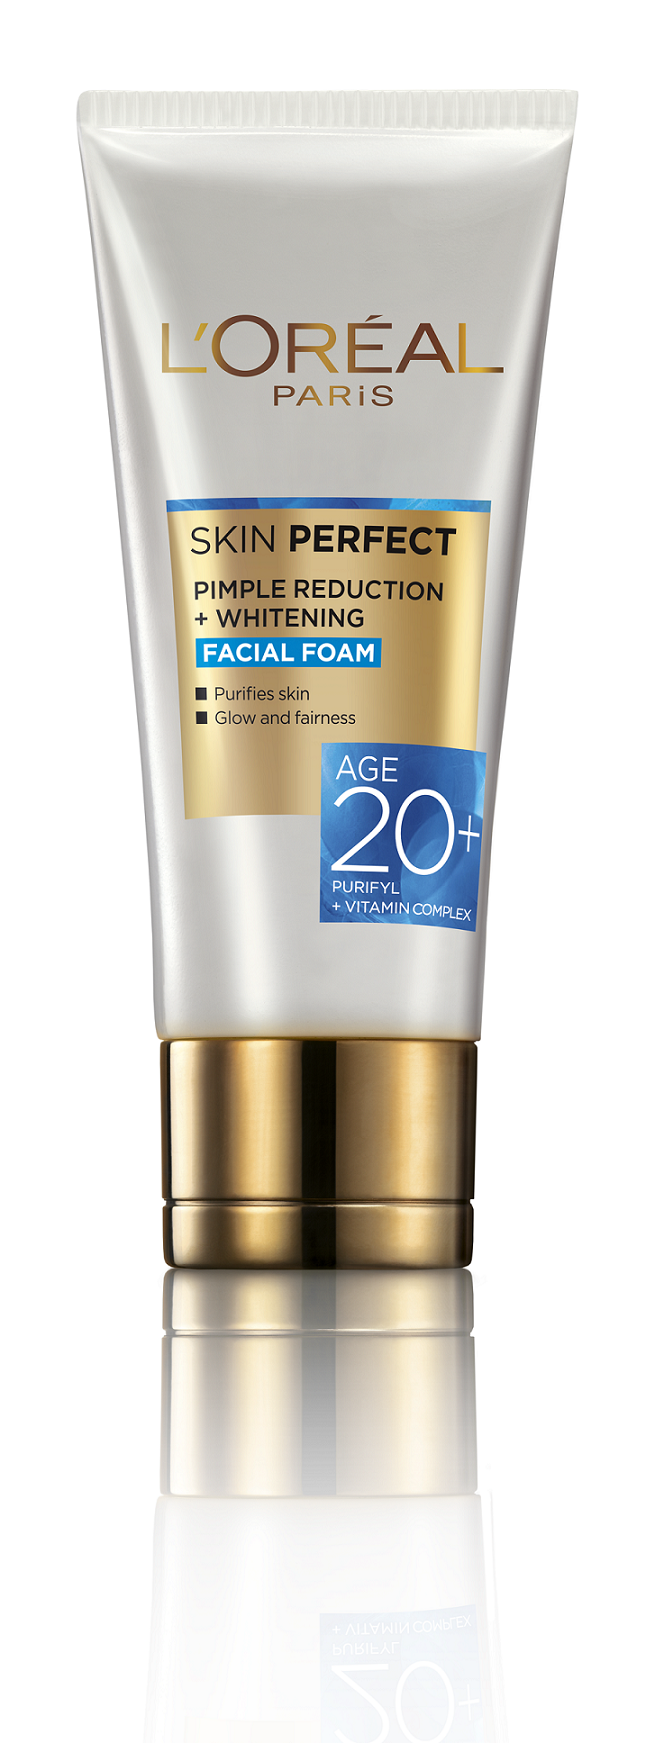 L'Oreal Paris Age 20+ Skin Perfect Facial Foam  available at Nykaa for Rs.84